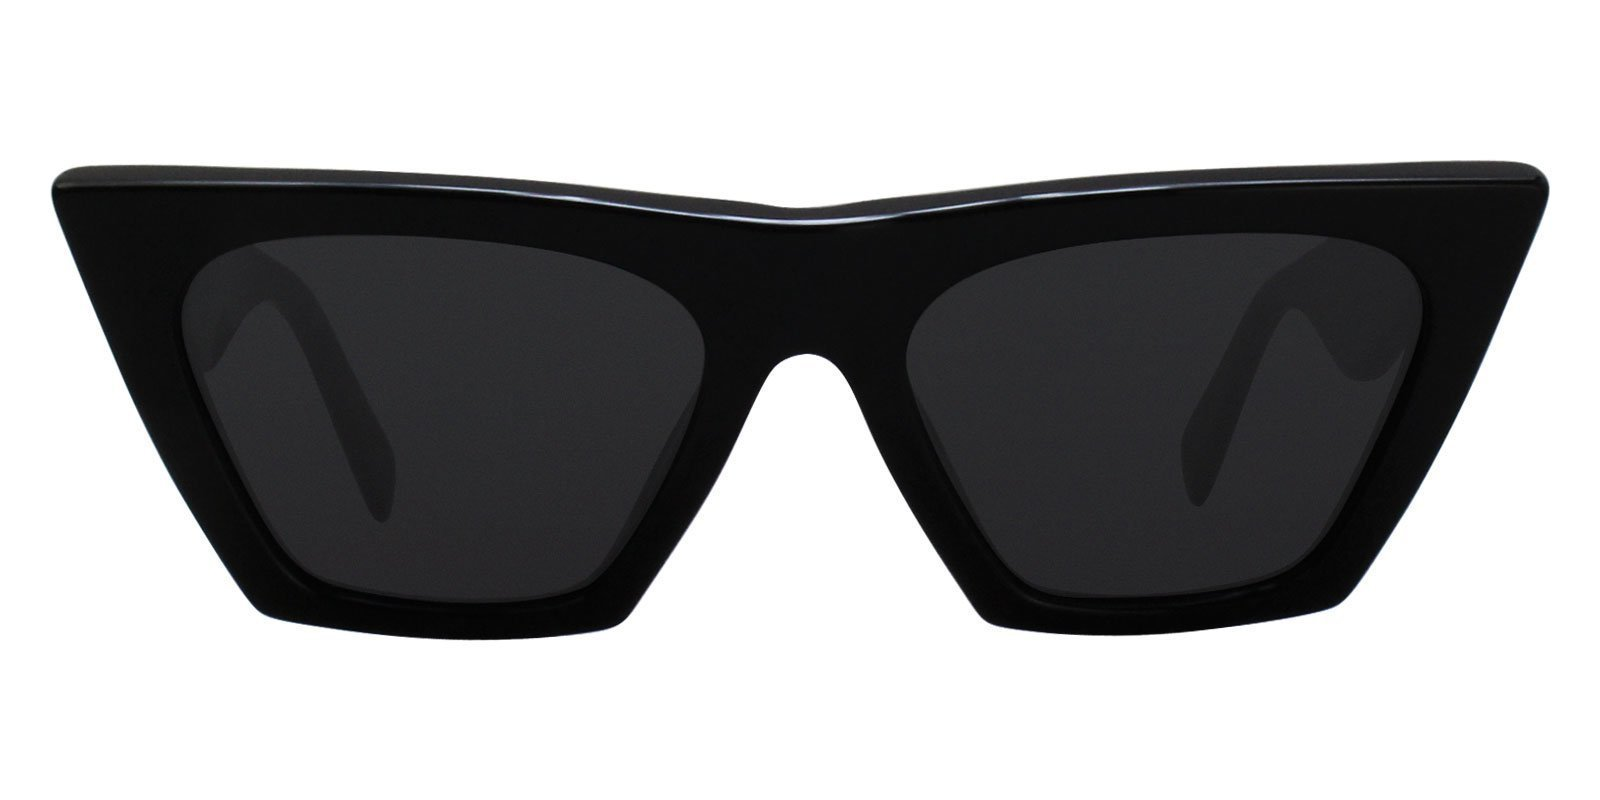 Celine Sunglasses Black